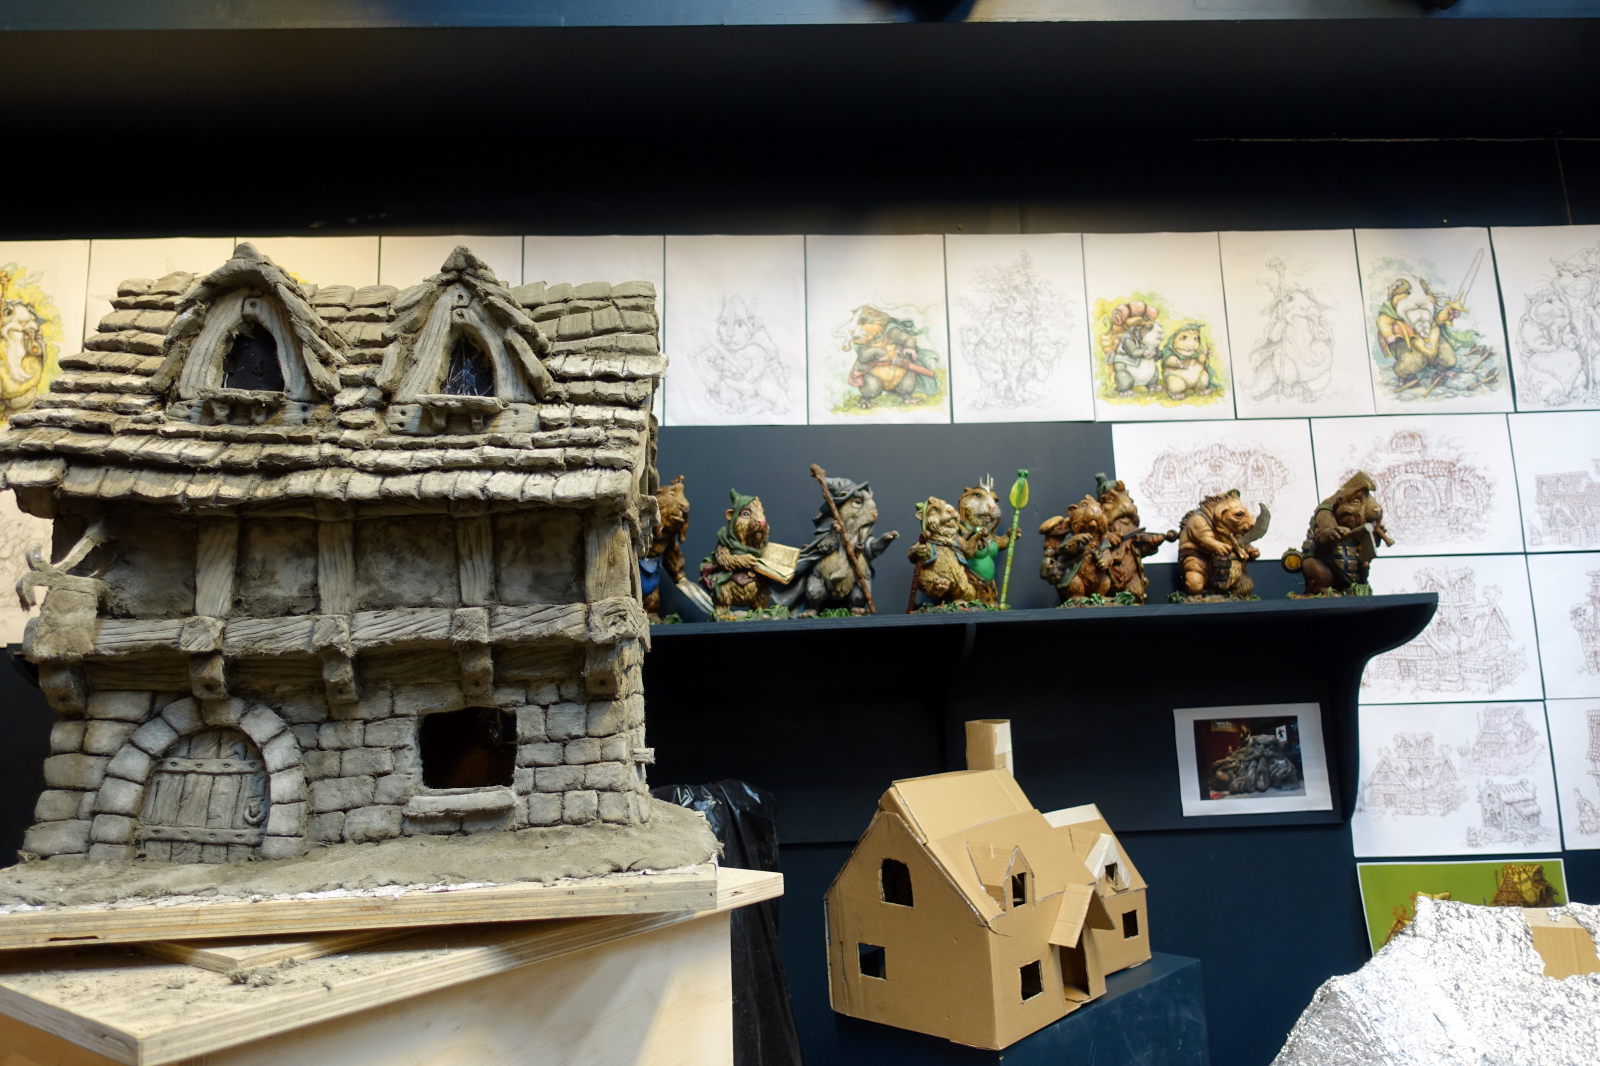 A sculpture of a house and a house model made from carton. Behind them there is a shelf with models of small animals. Some pictures are visible on the wall.